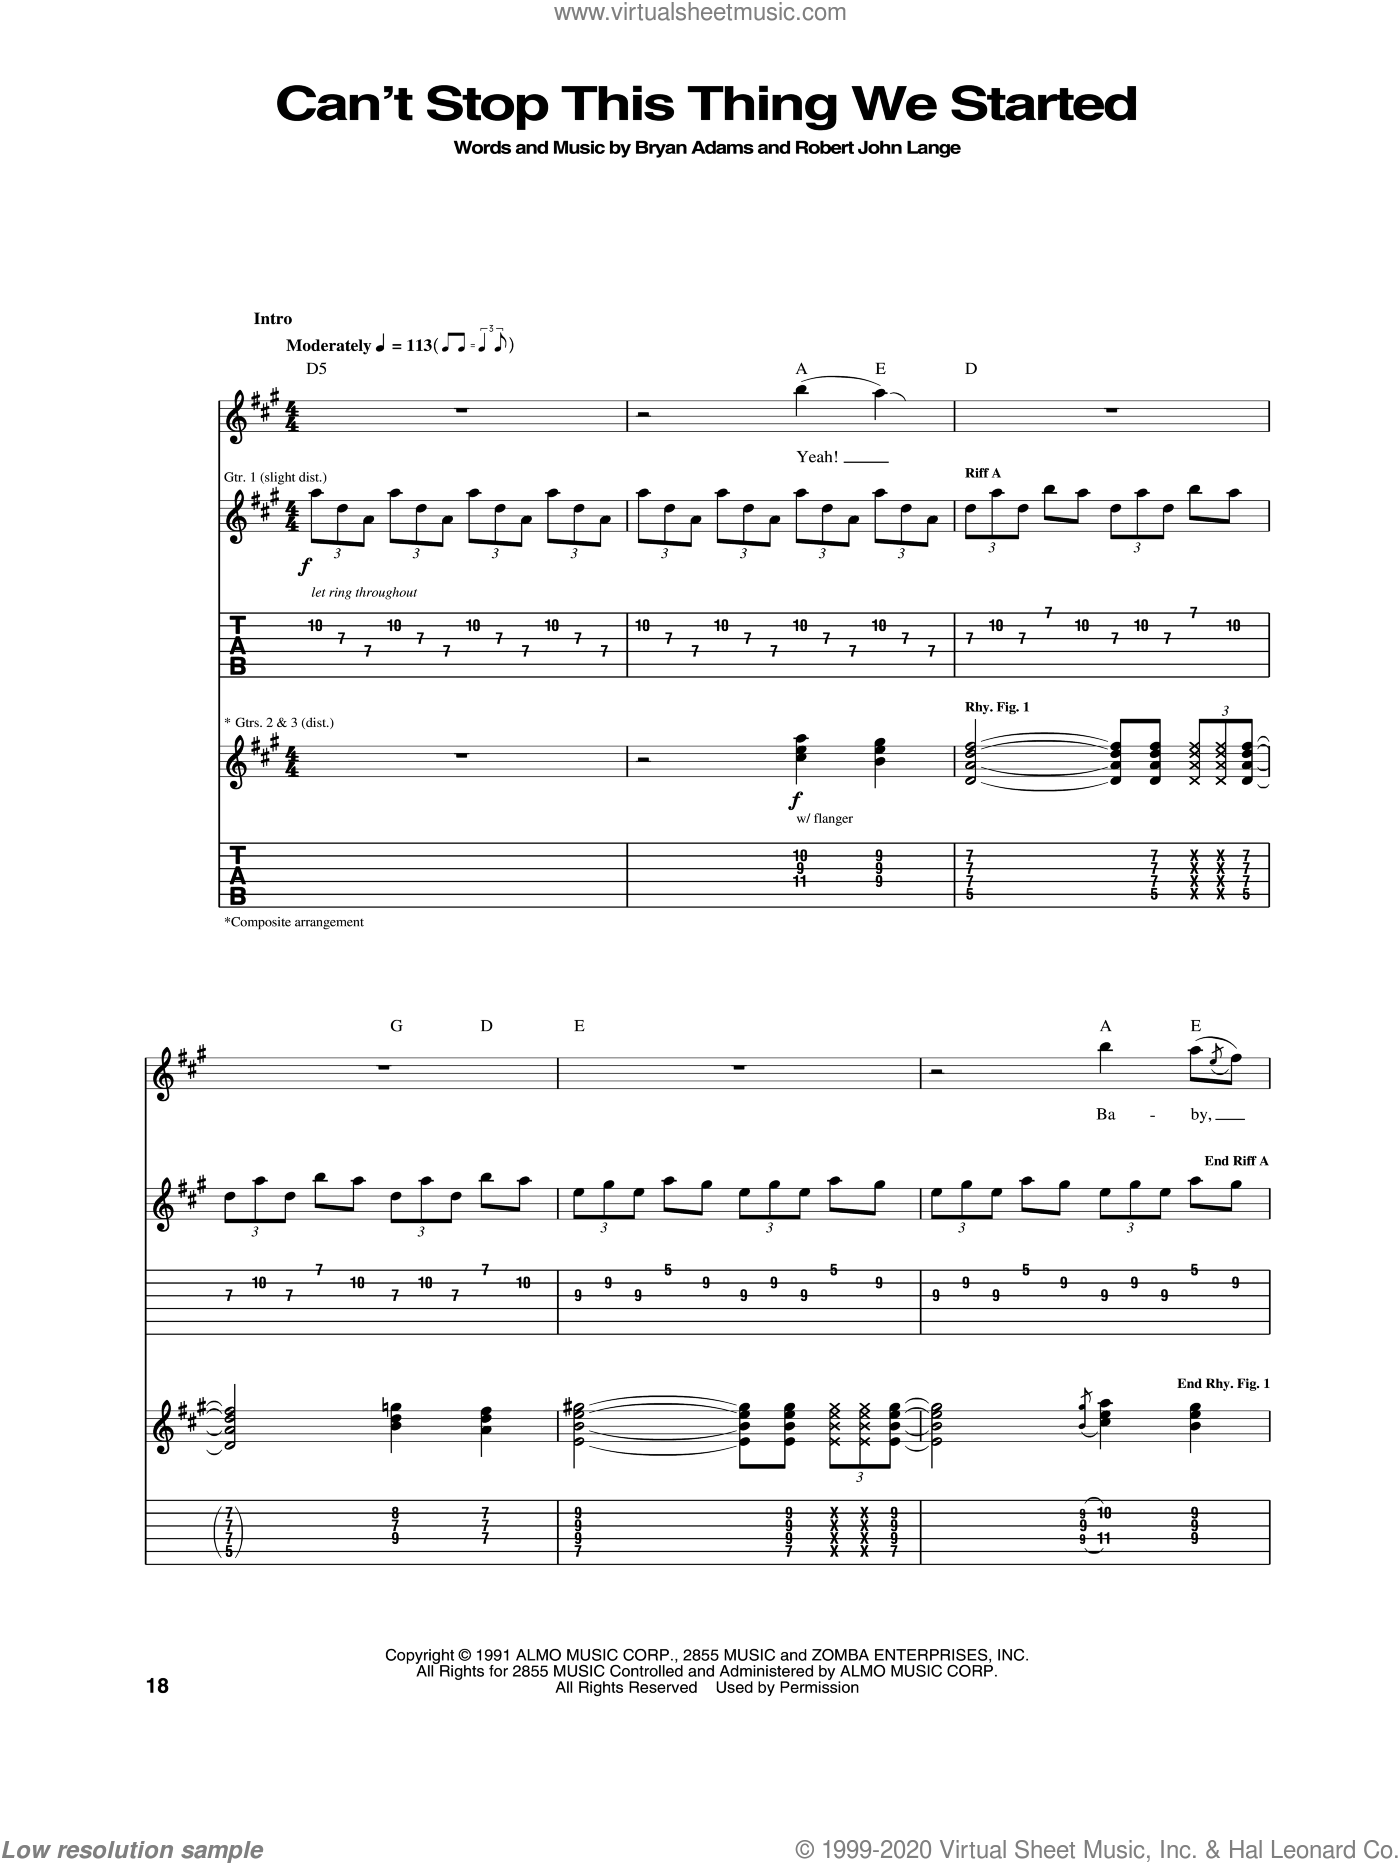 Can't Stop This Thing We Started sheet music for guitar (tablature) by Robert John Lange